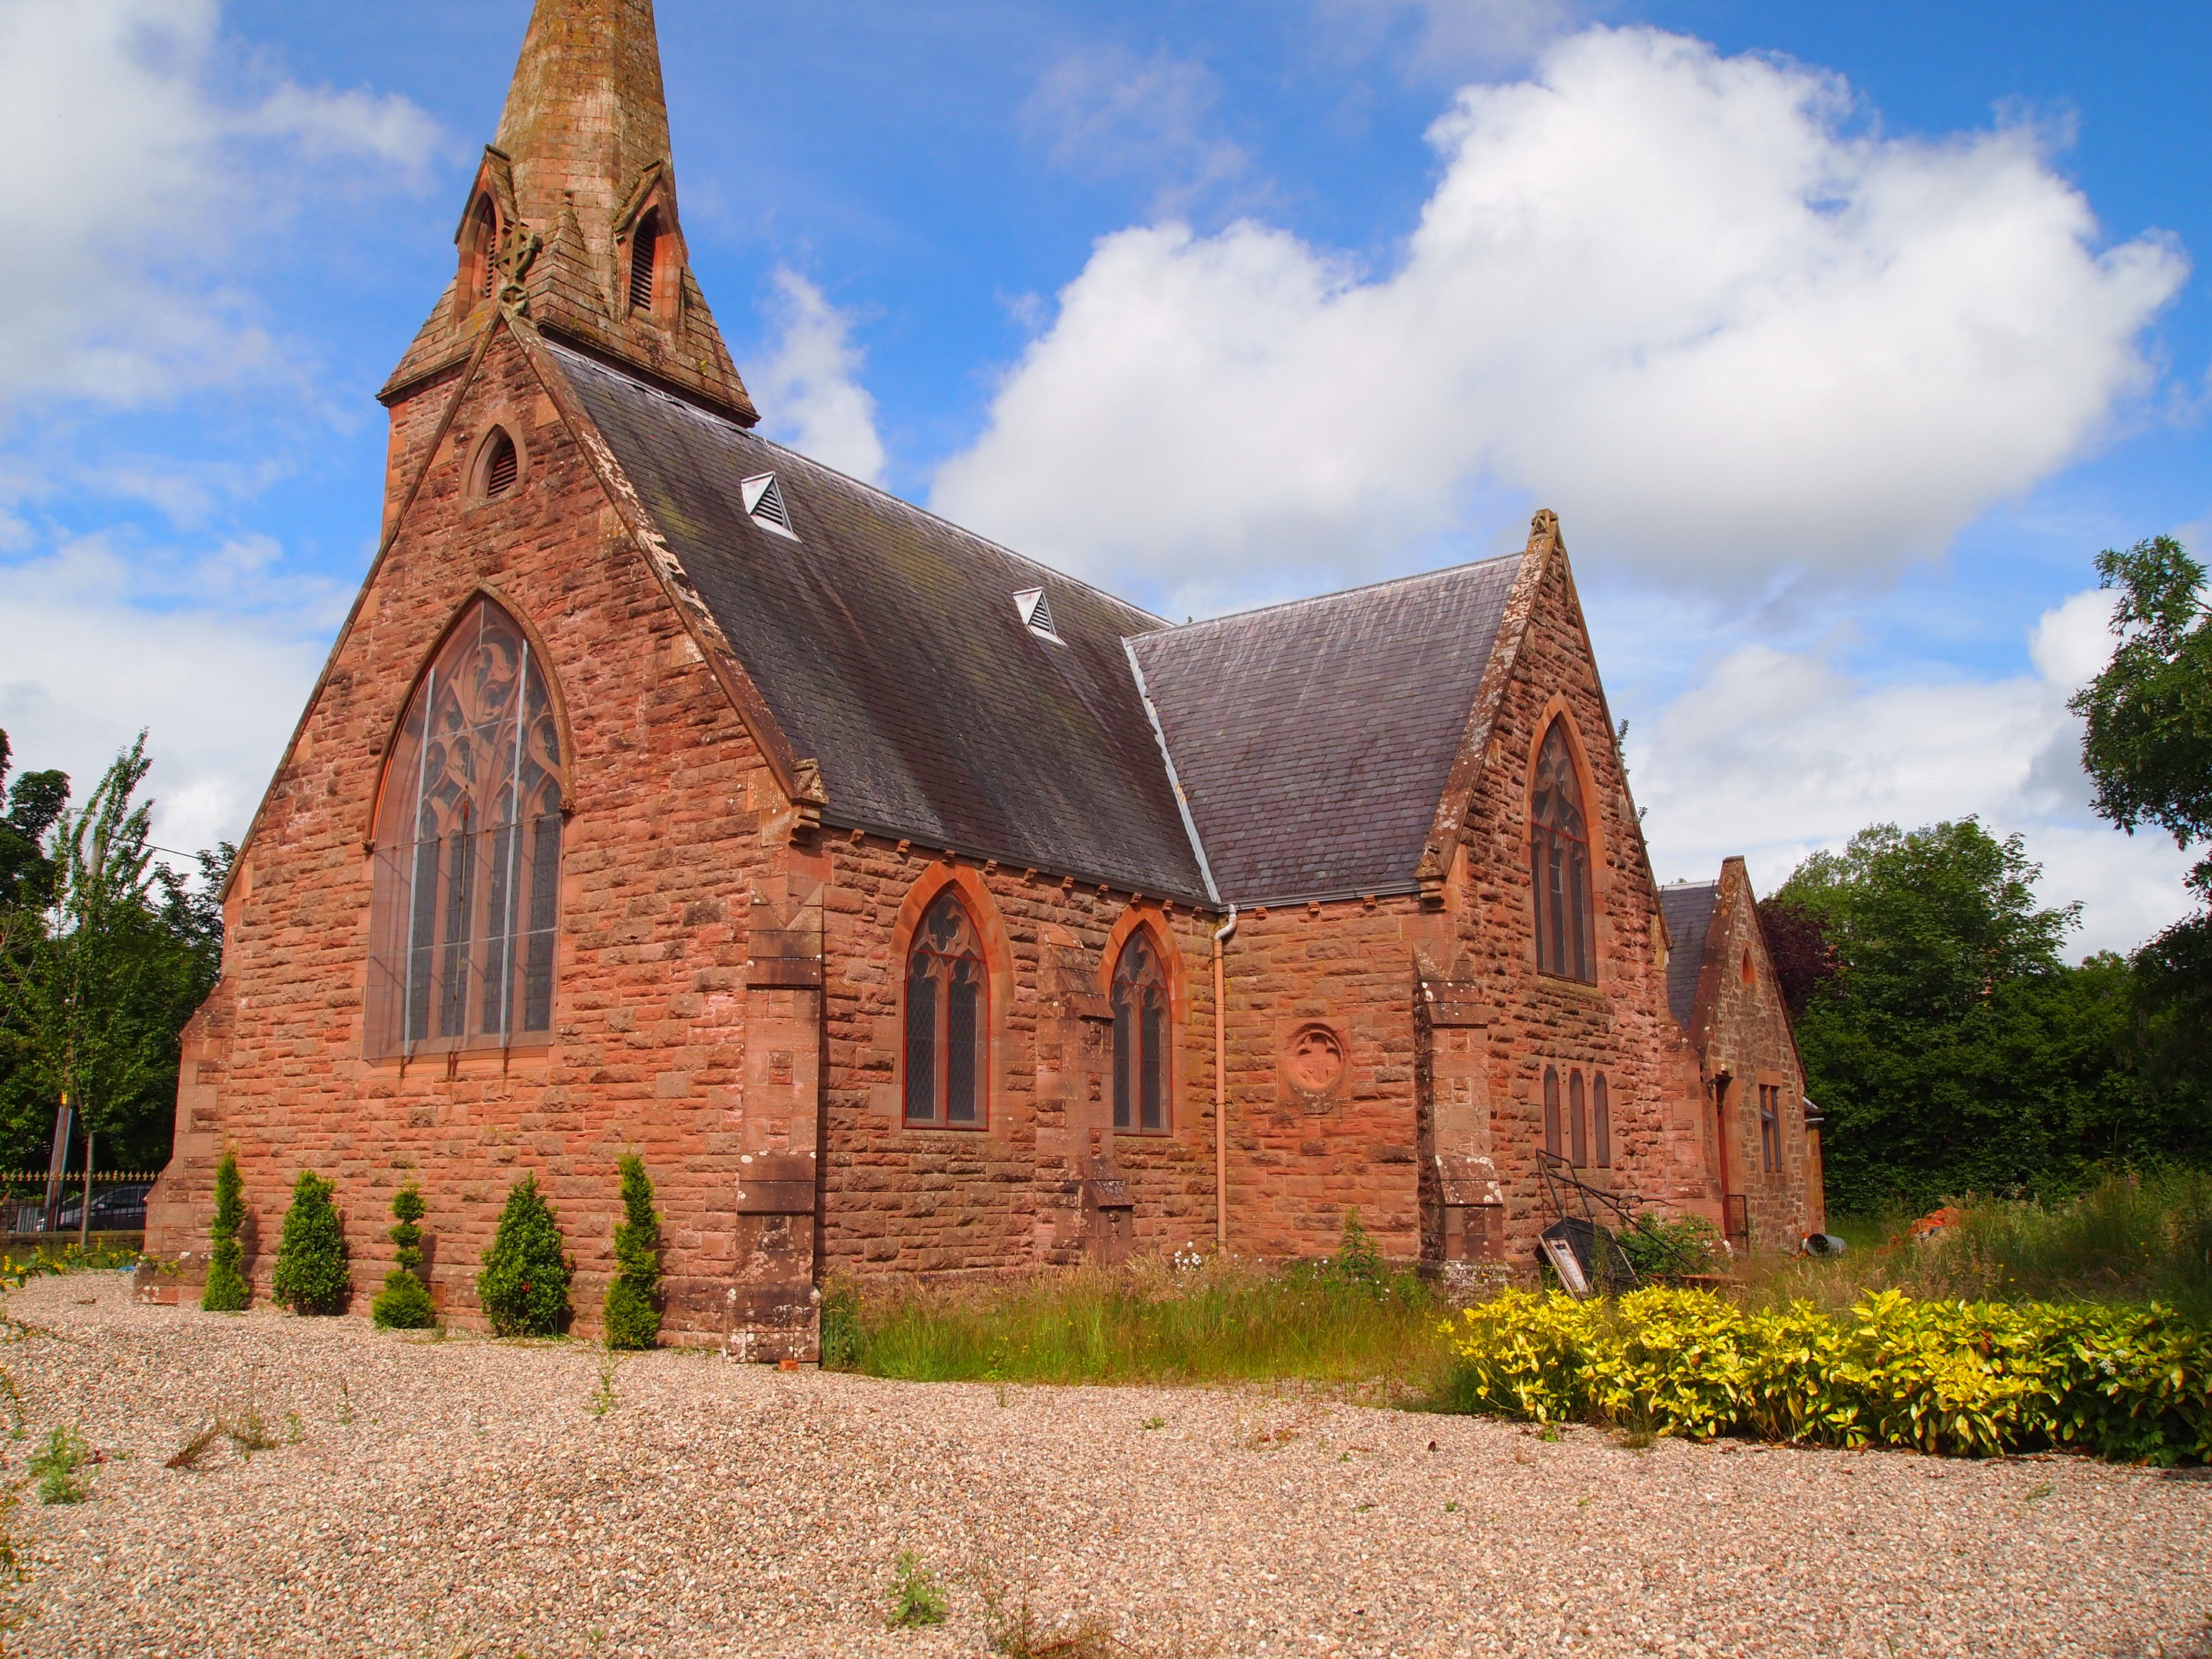 The Riverside Church at Blairgowrie